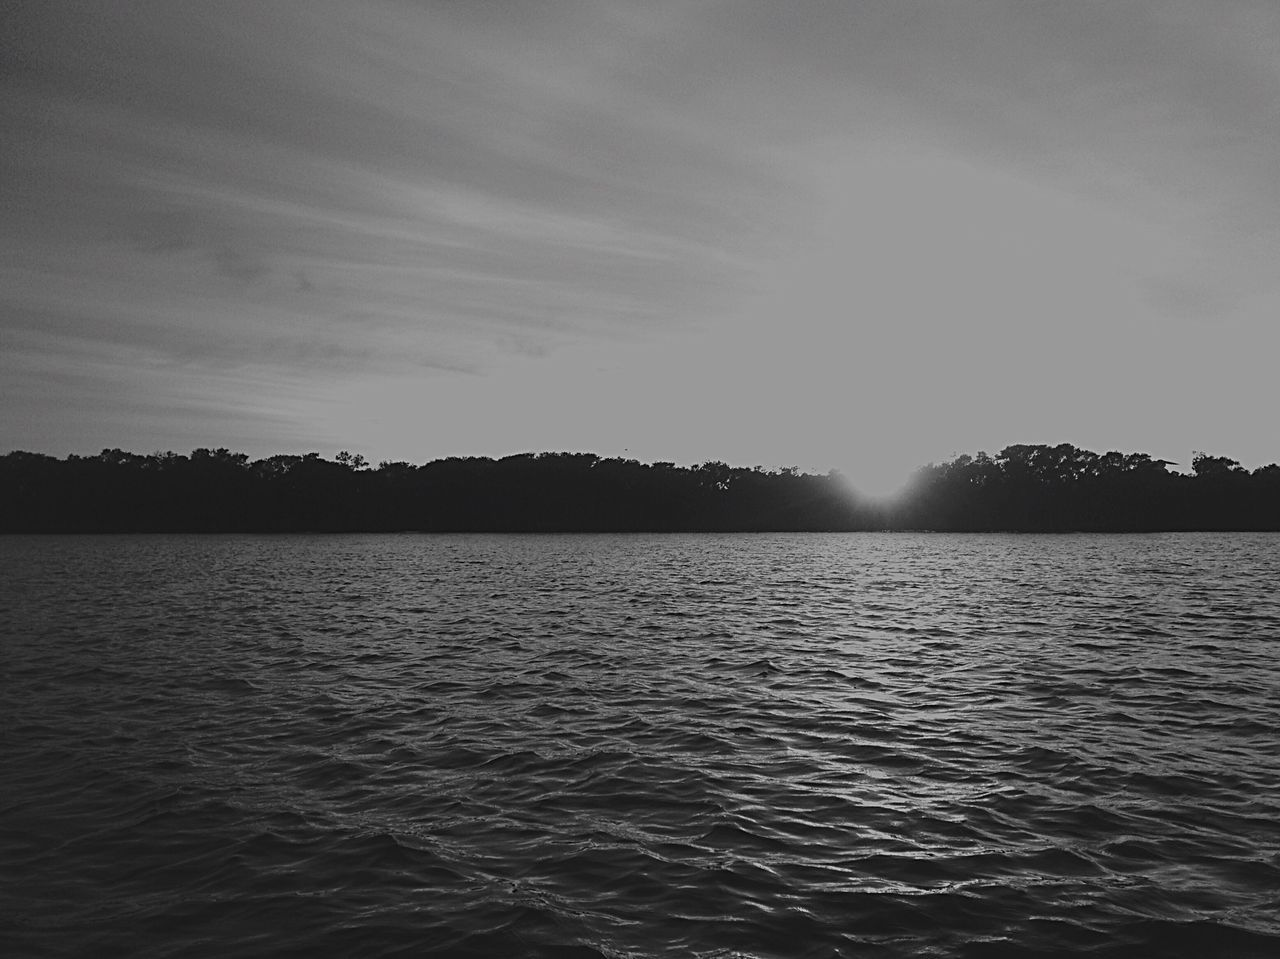 Monochrome Photography Water Tranquil Scene Scenics Tranquility Waterfront Rippled Sun Beauty In Nature Calm Sky Nature Majestic Sea Cloud Sunbeam Outdoors Water Surface Seascape Non-urban Scene No People